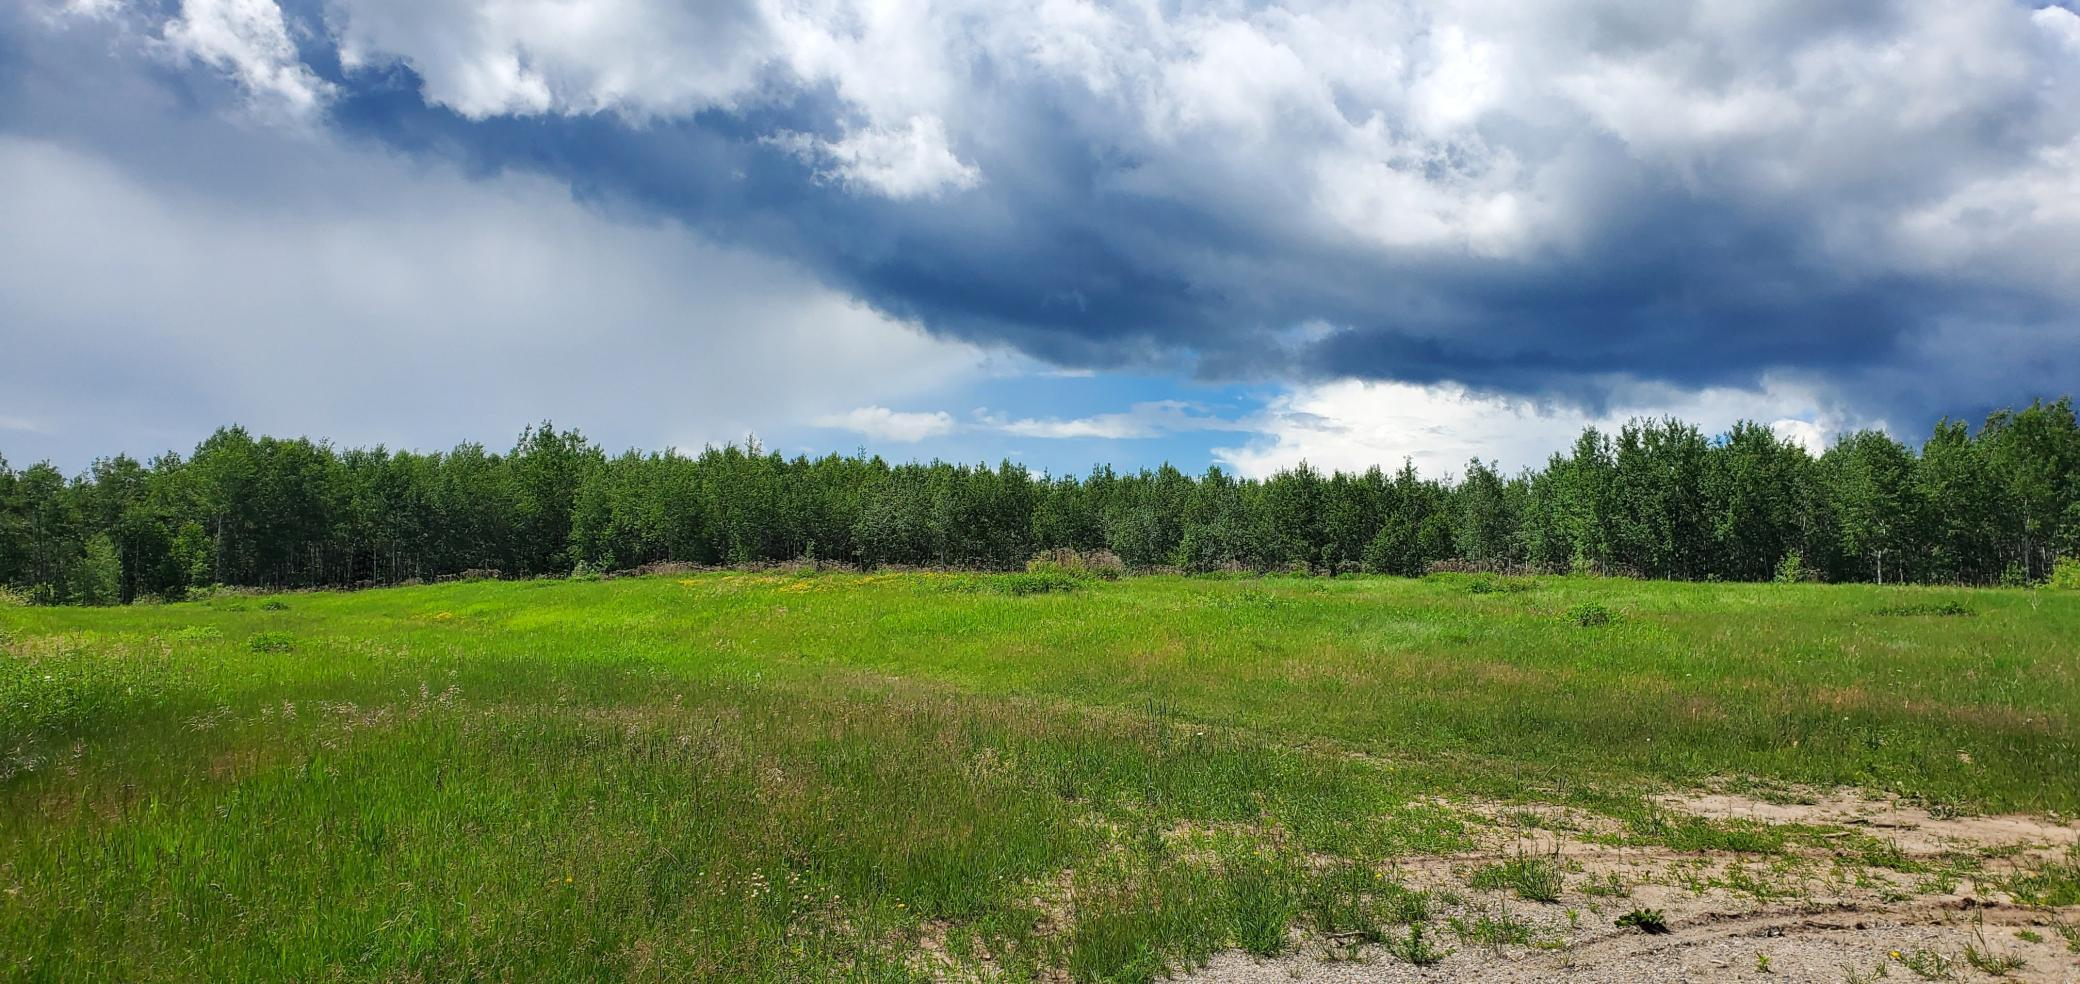 TBD HWY 169 Property Photo - Bovey, MN real estate listing